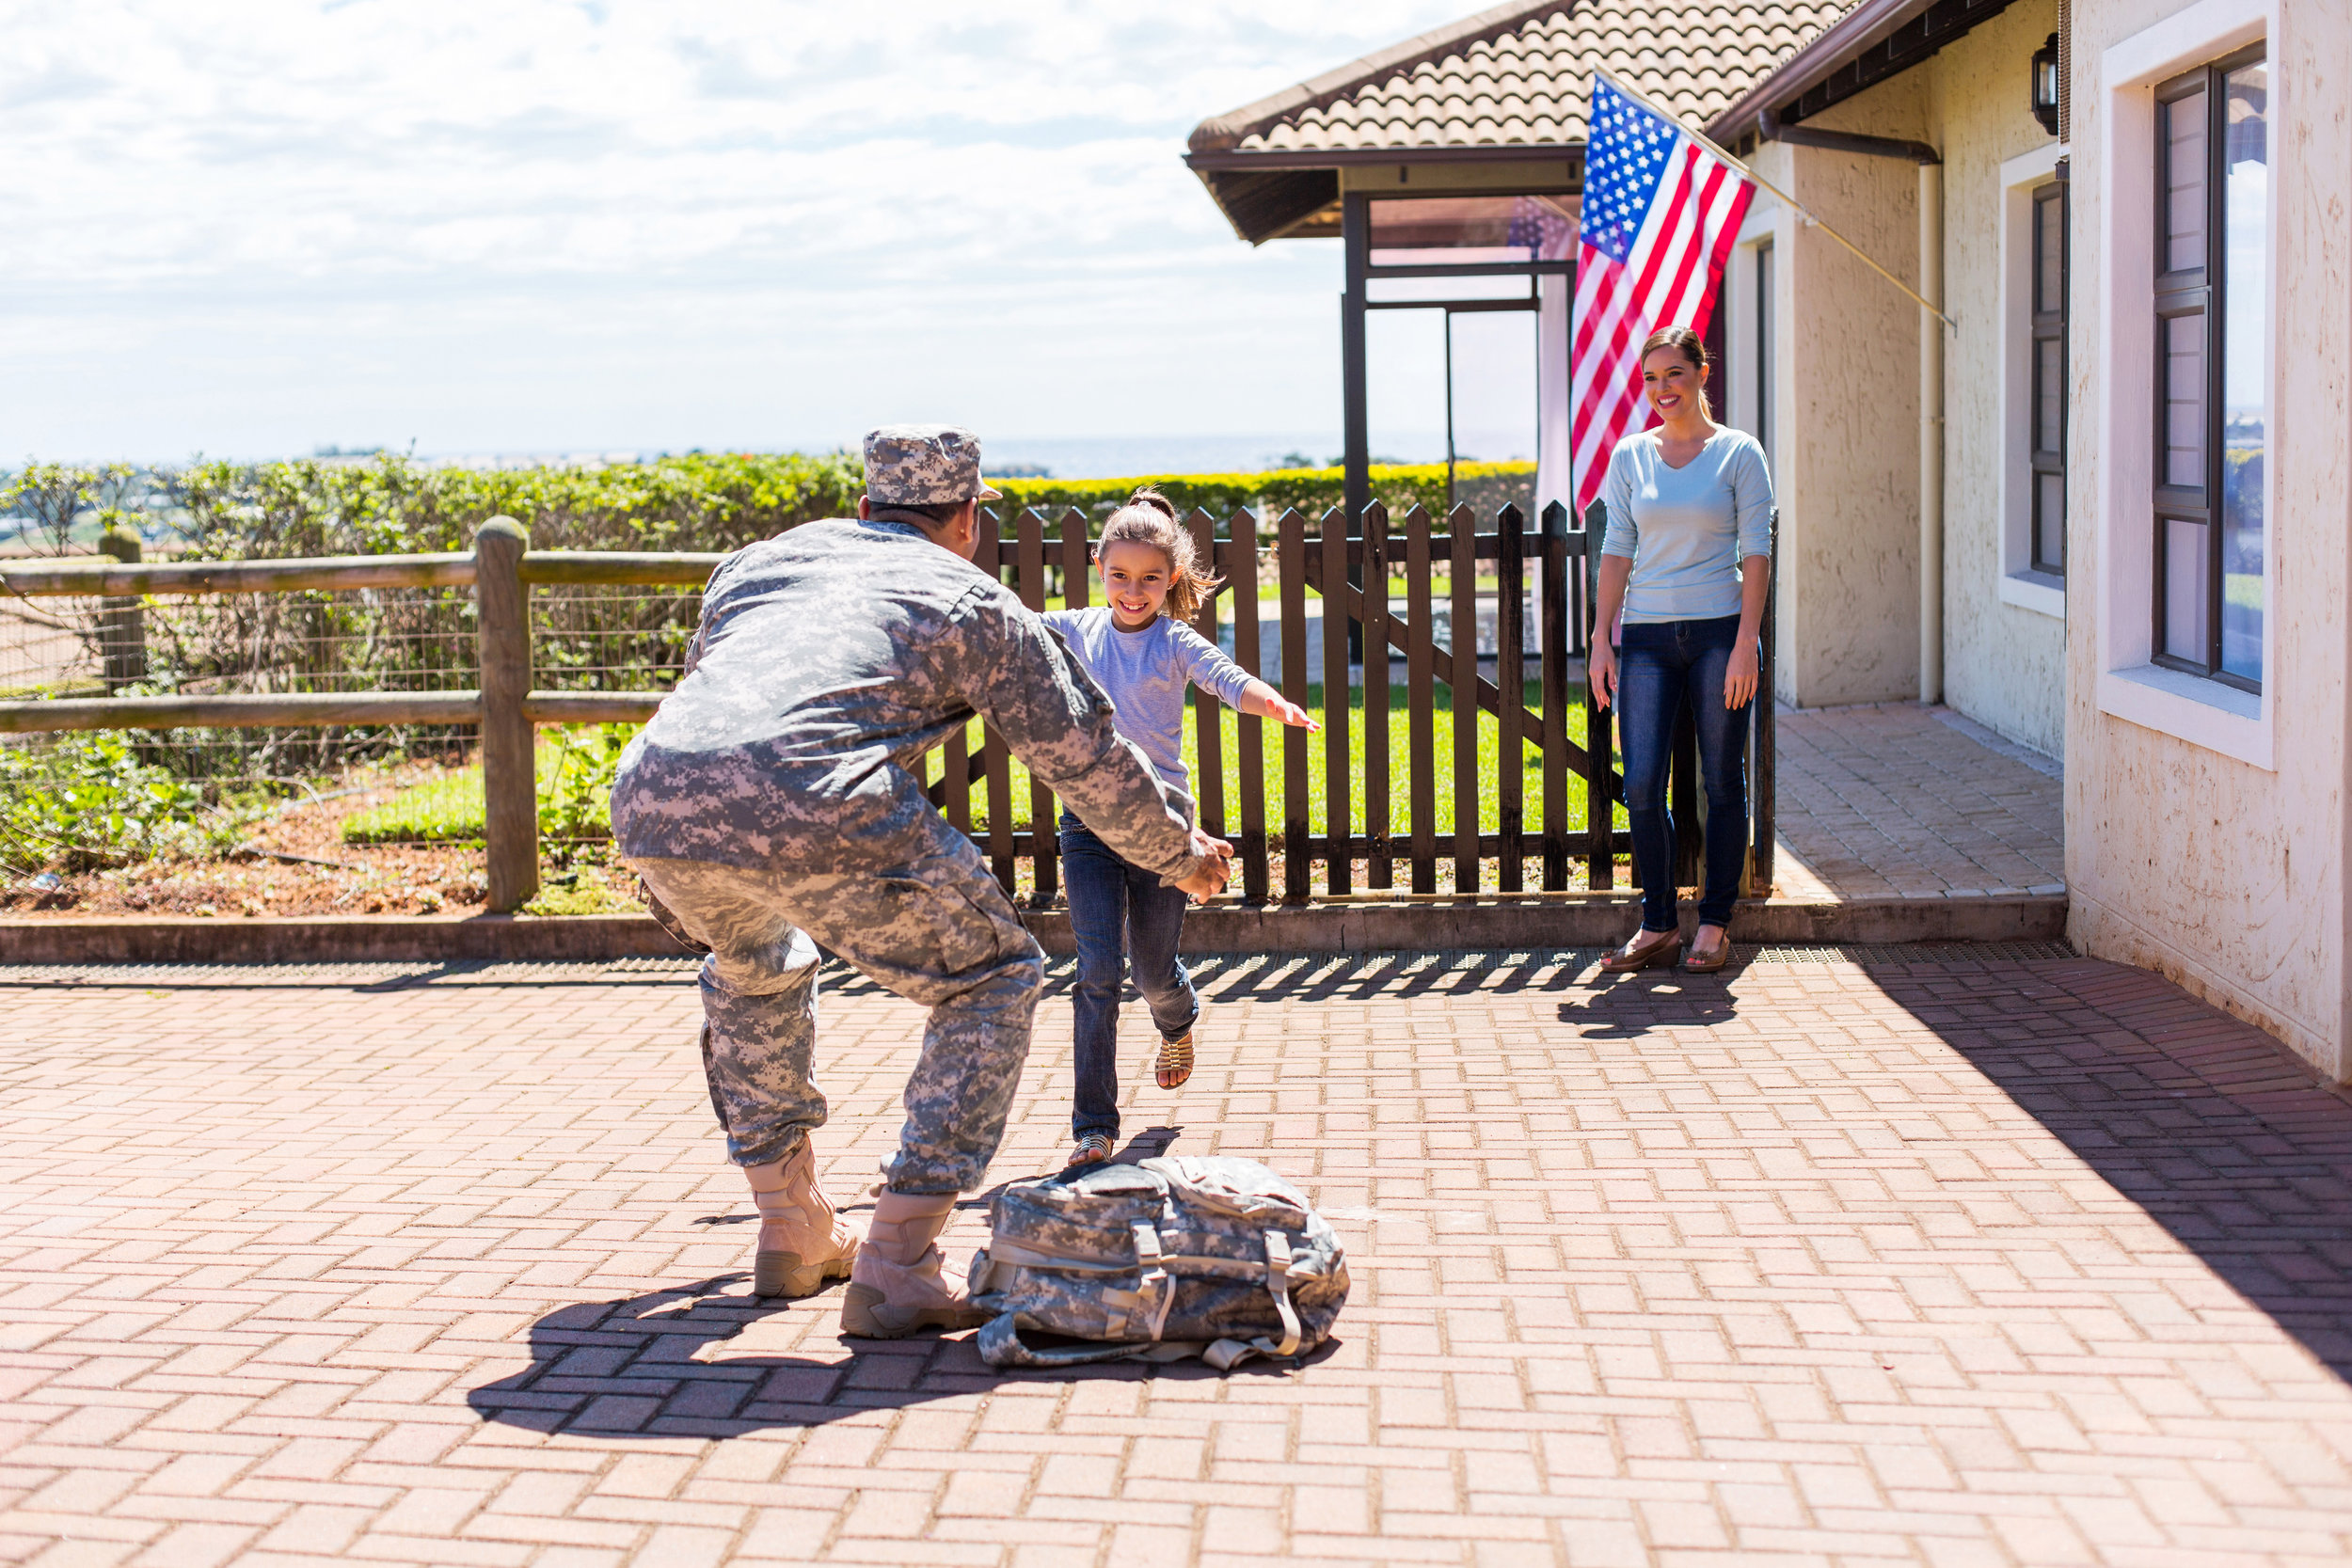 ARE YOU READY FOR THE NEXT STEP? - Connect with your VA SPECIALIST